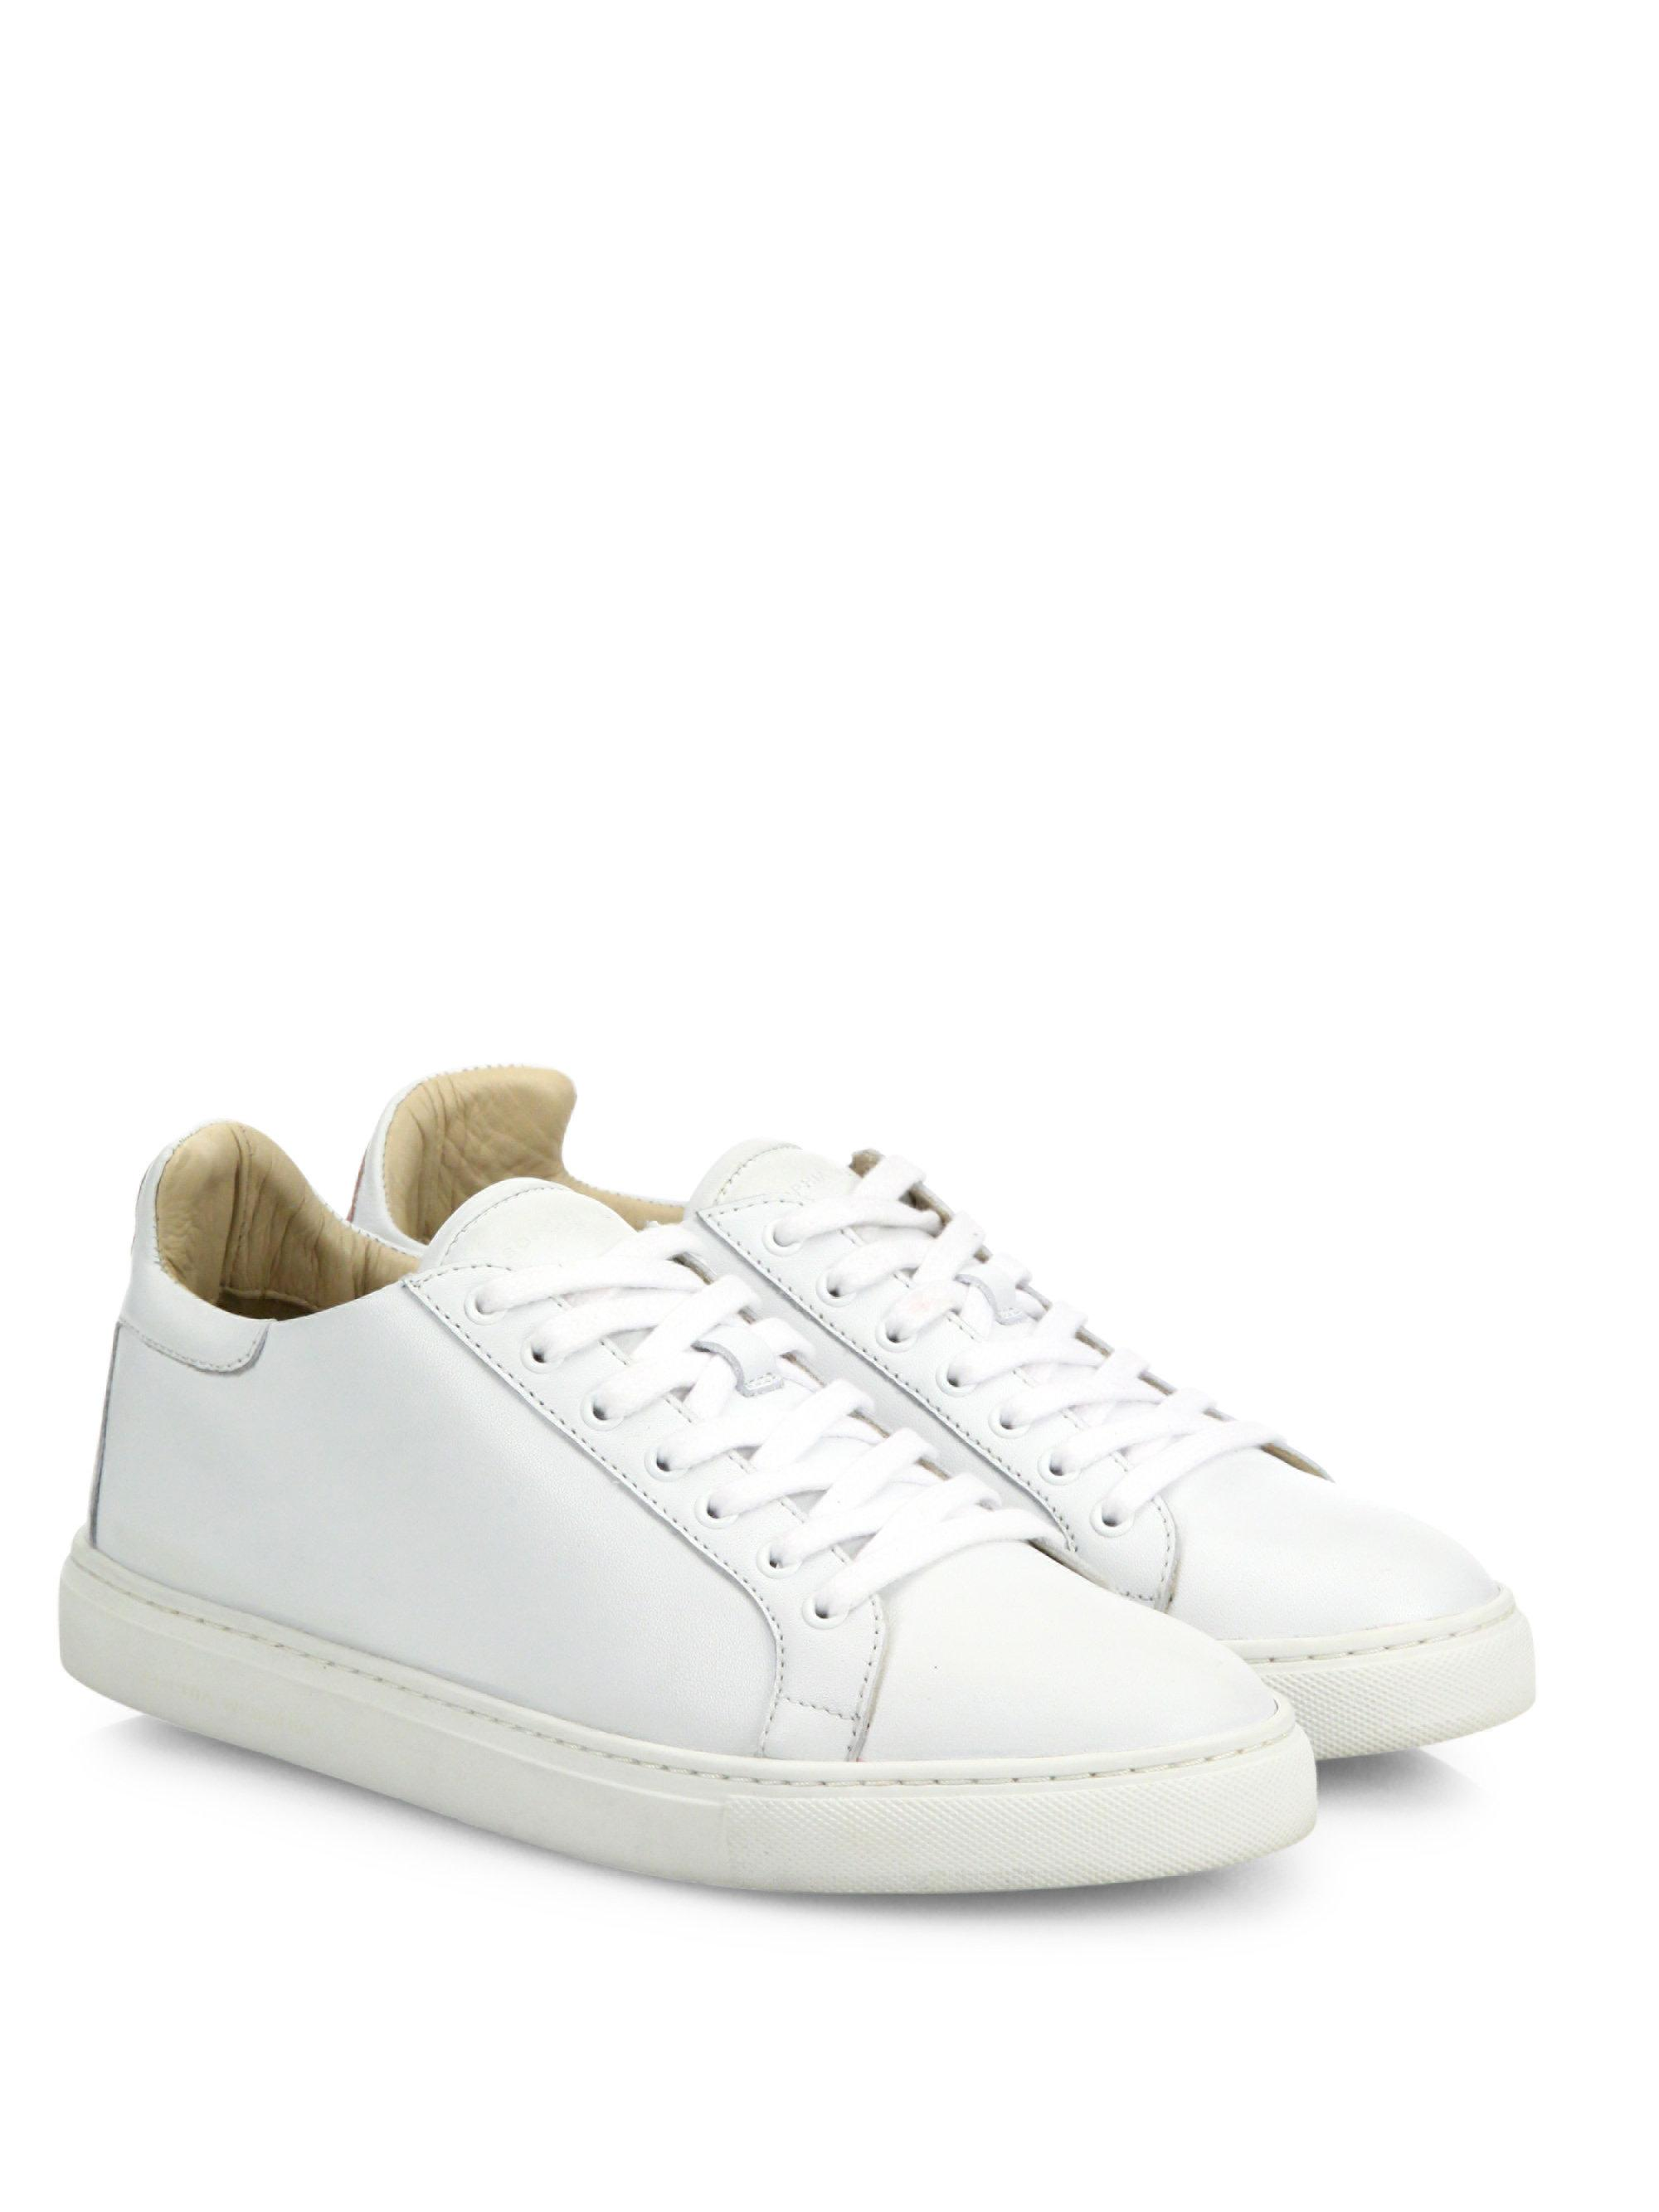 sports lace-up sneakers - White Sophia Webster I3YTfeLxX4